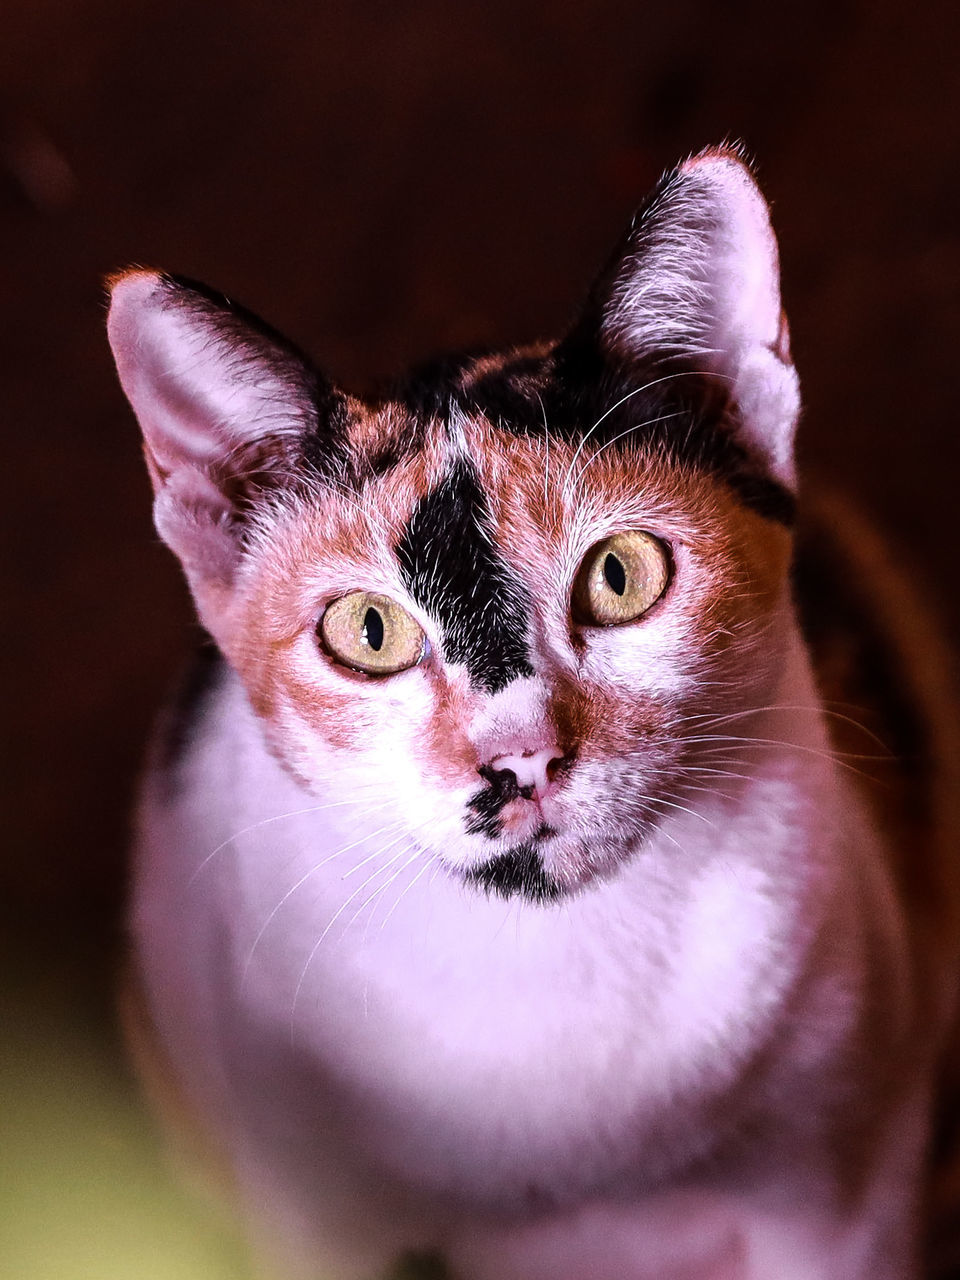 cat, pet, animal themes, animal, mammal, domestic animals, one animal, whiskers, close-up, domestic cat, feline, felidae, small to medium-sized cats, portrait, looking at camera, animal body part, nose, kitten, carnivore, no people, indoors, eye, cute, young animal, animal head, animal eye